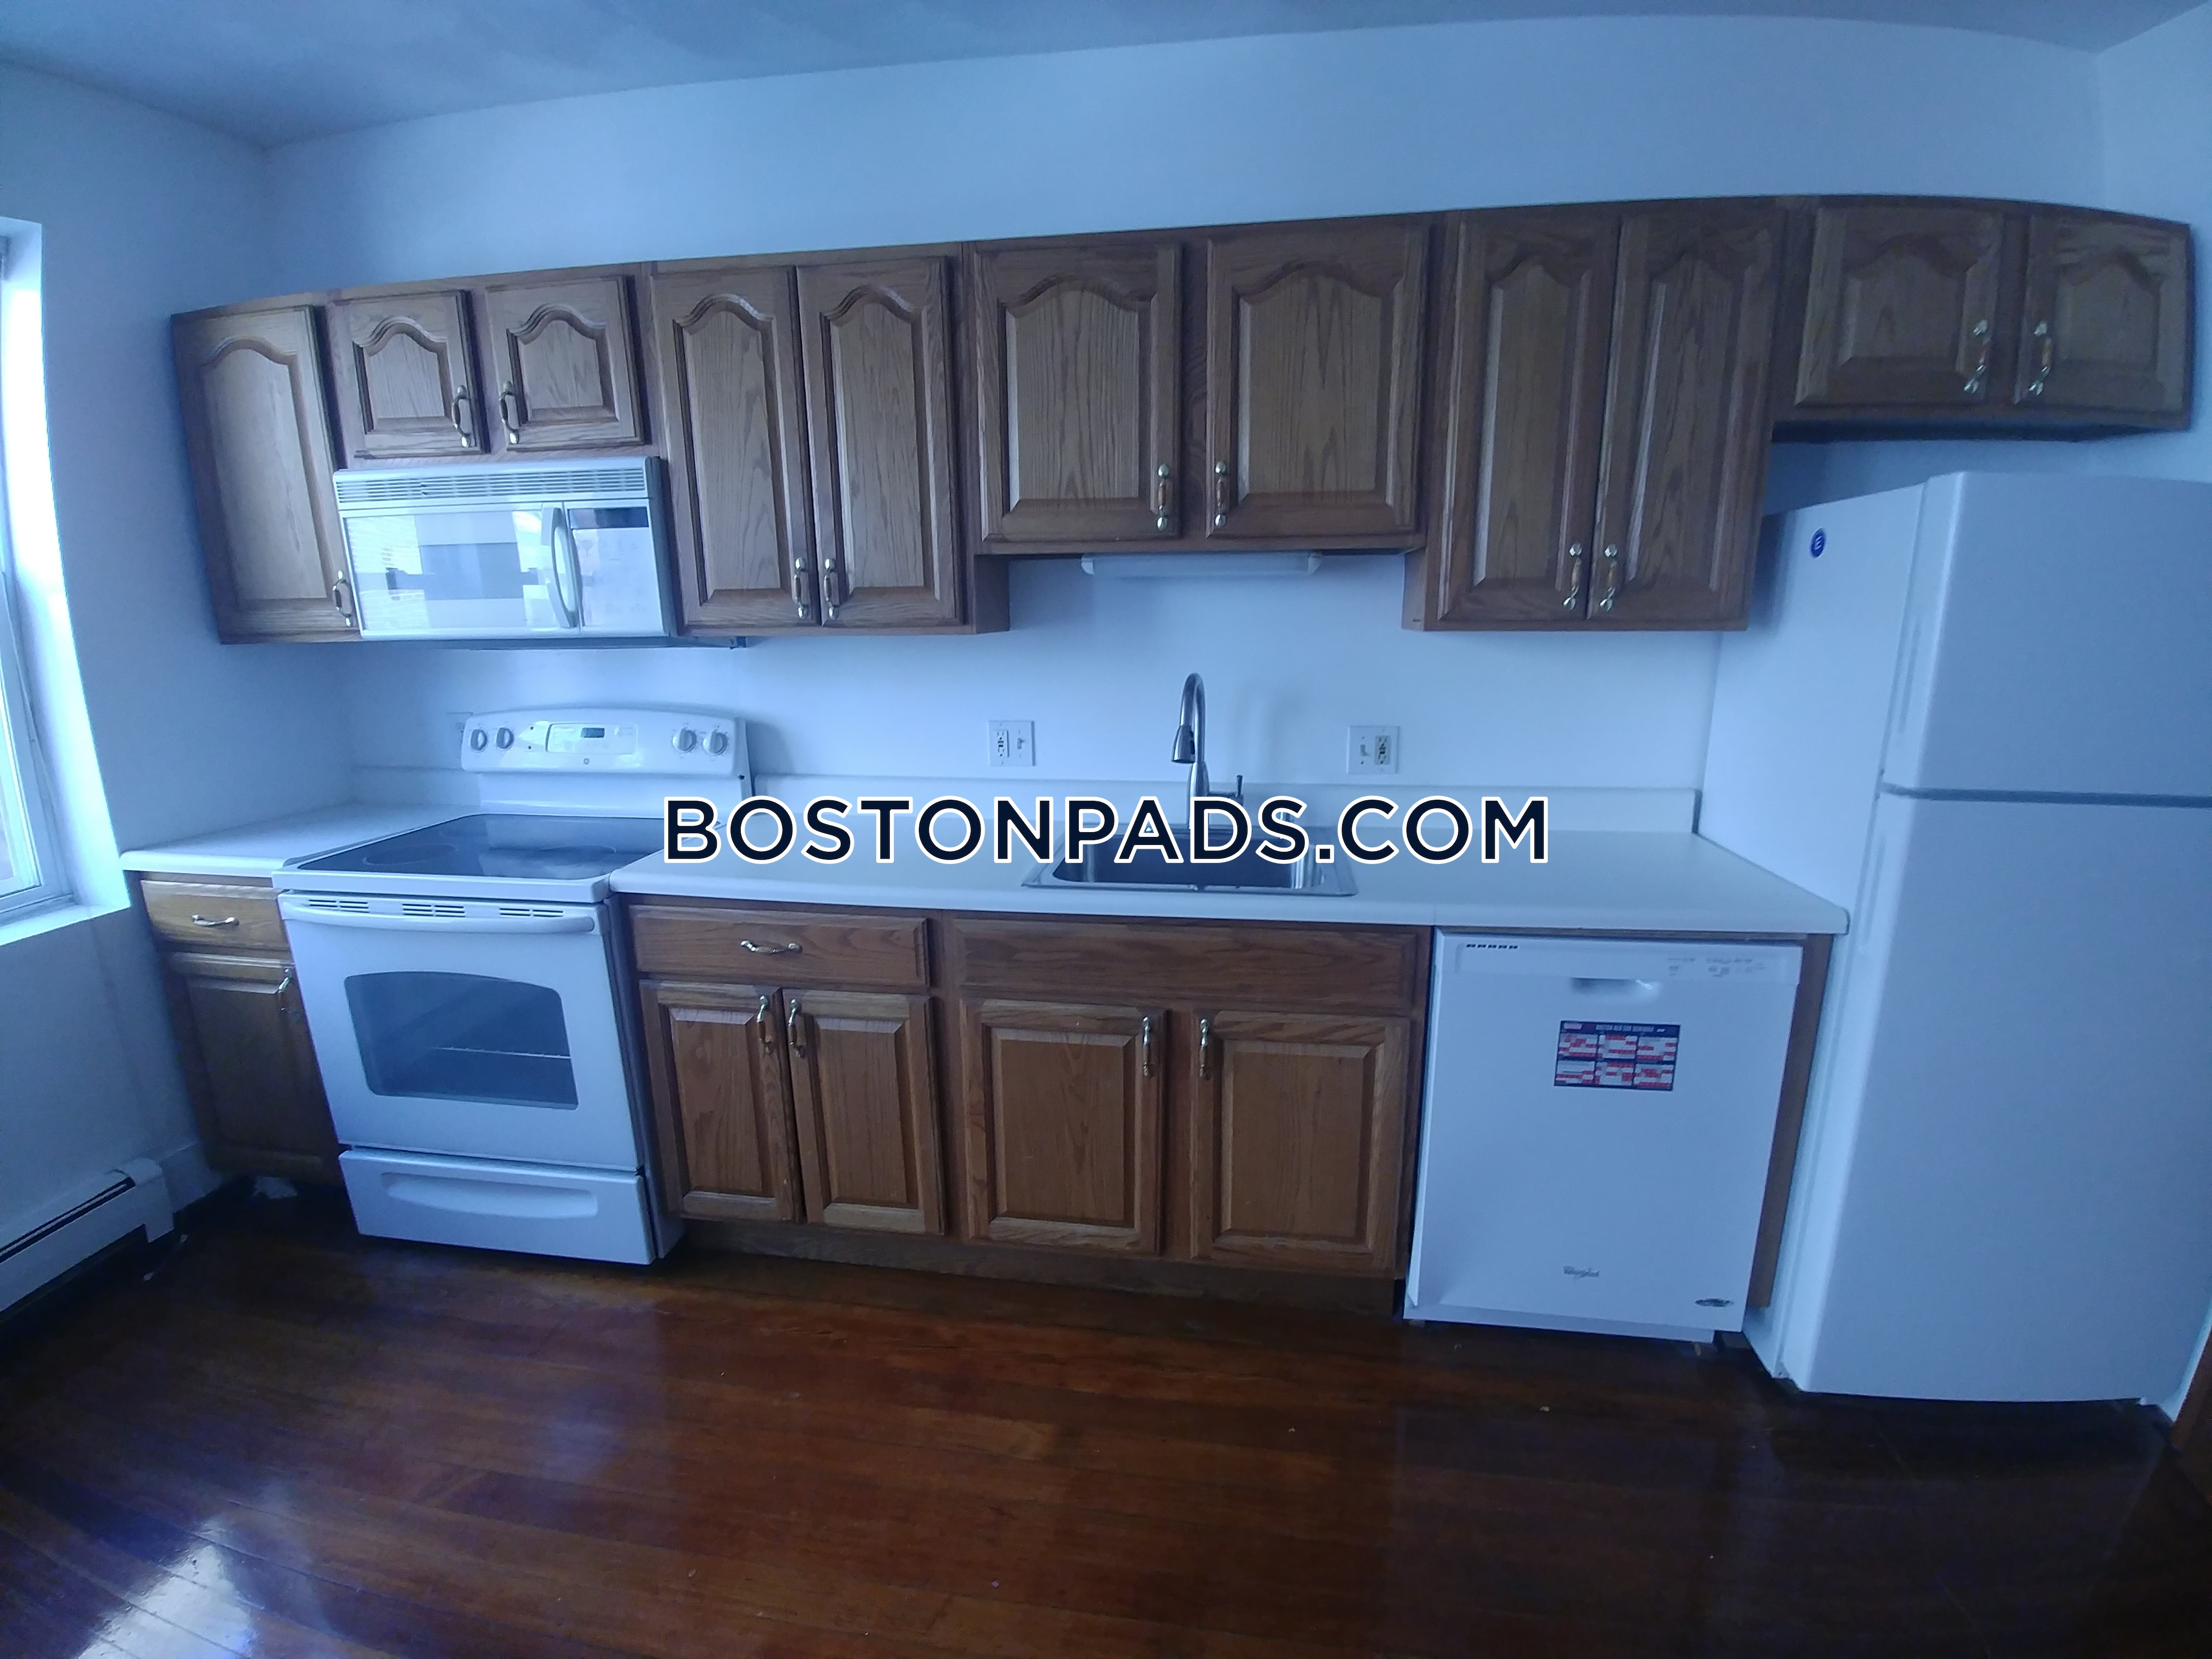 South End Apartments | 1 Bed 1 Bath - Boston - North End $2,450